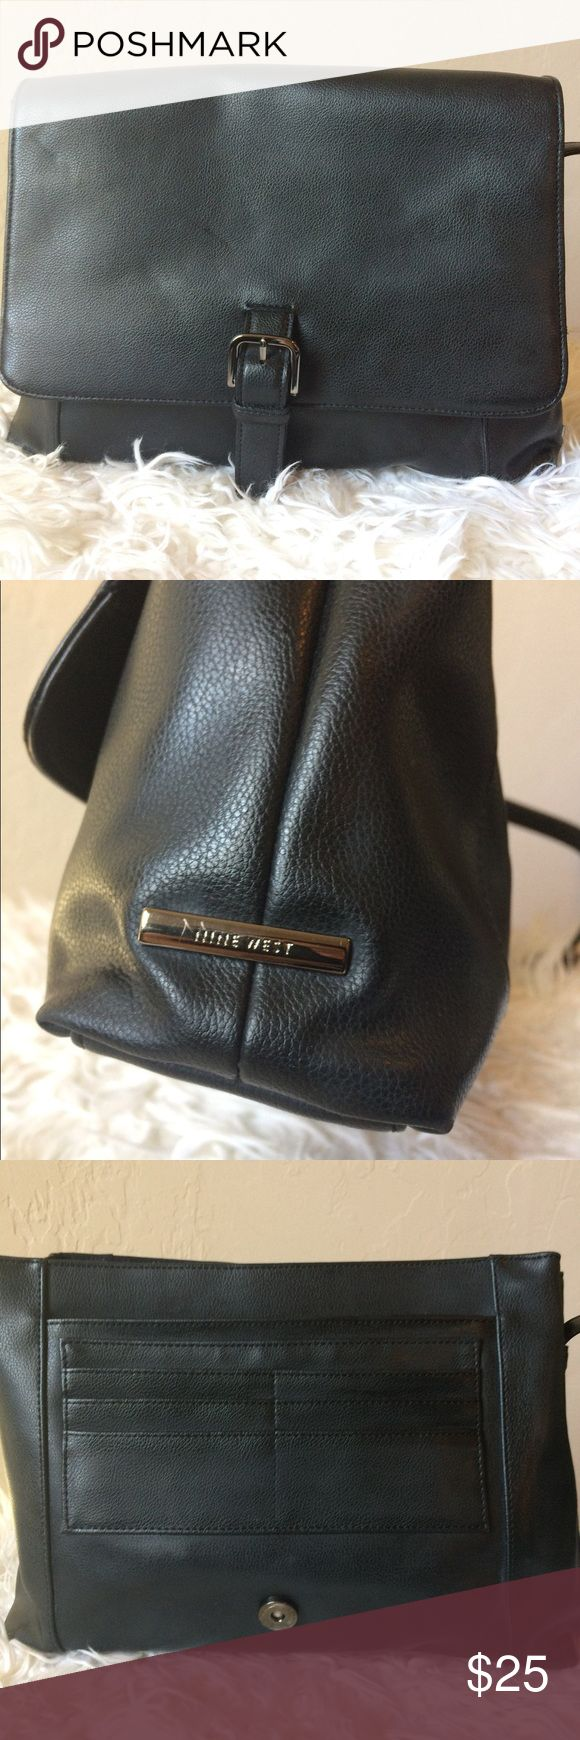 Nine West purse This beautiful, classic, black purse is great for everyday use! It has two small white scratches (pictured) which are on the inside of the strap and not noticeable. This is a must have in every girl's closet! Nine West Bags Shoulder Bags